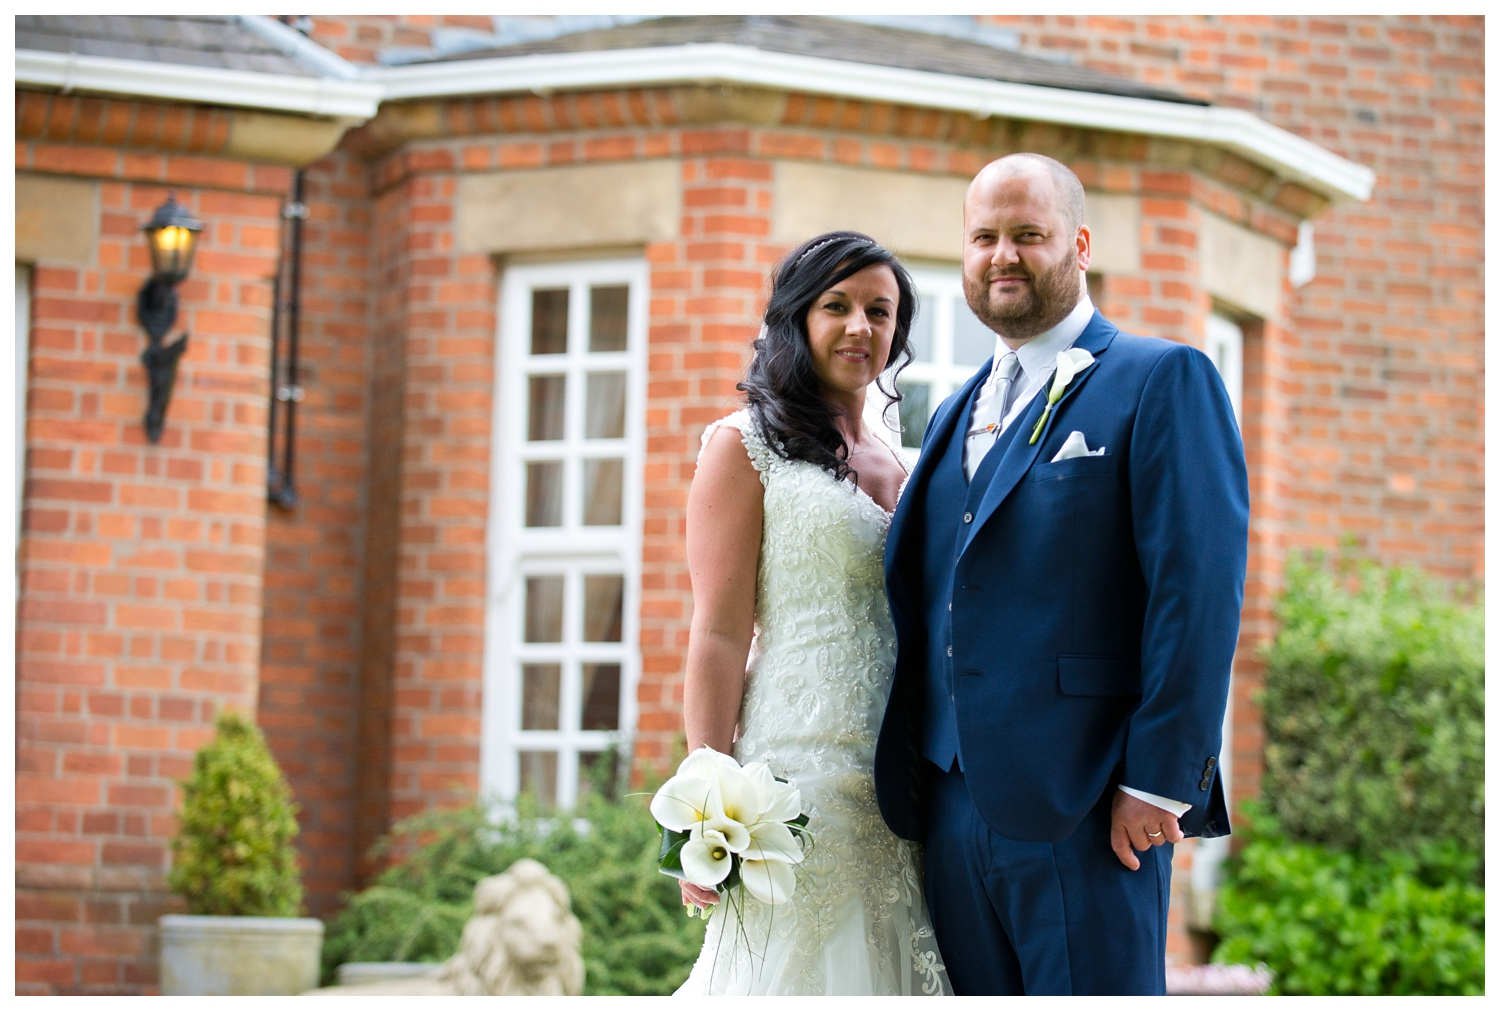 Swancar-Farm-Wedding-Photography_0049